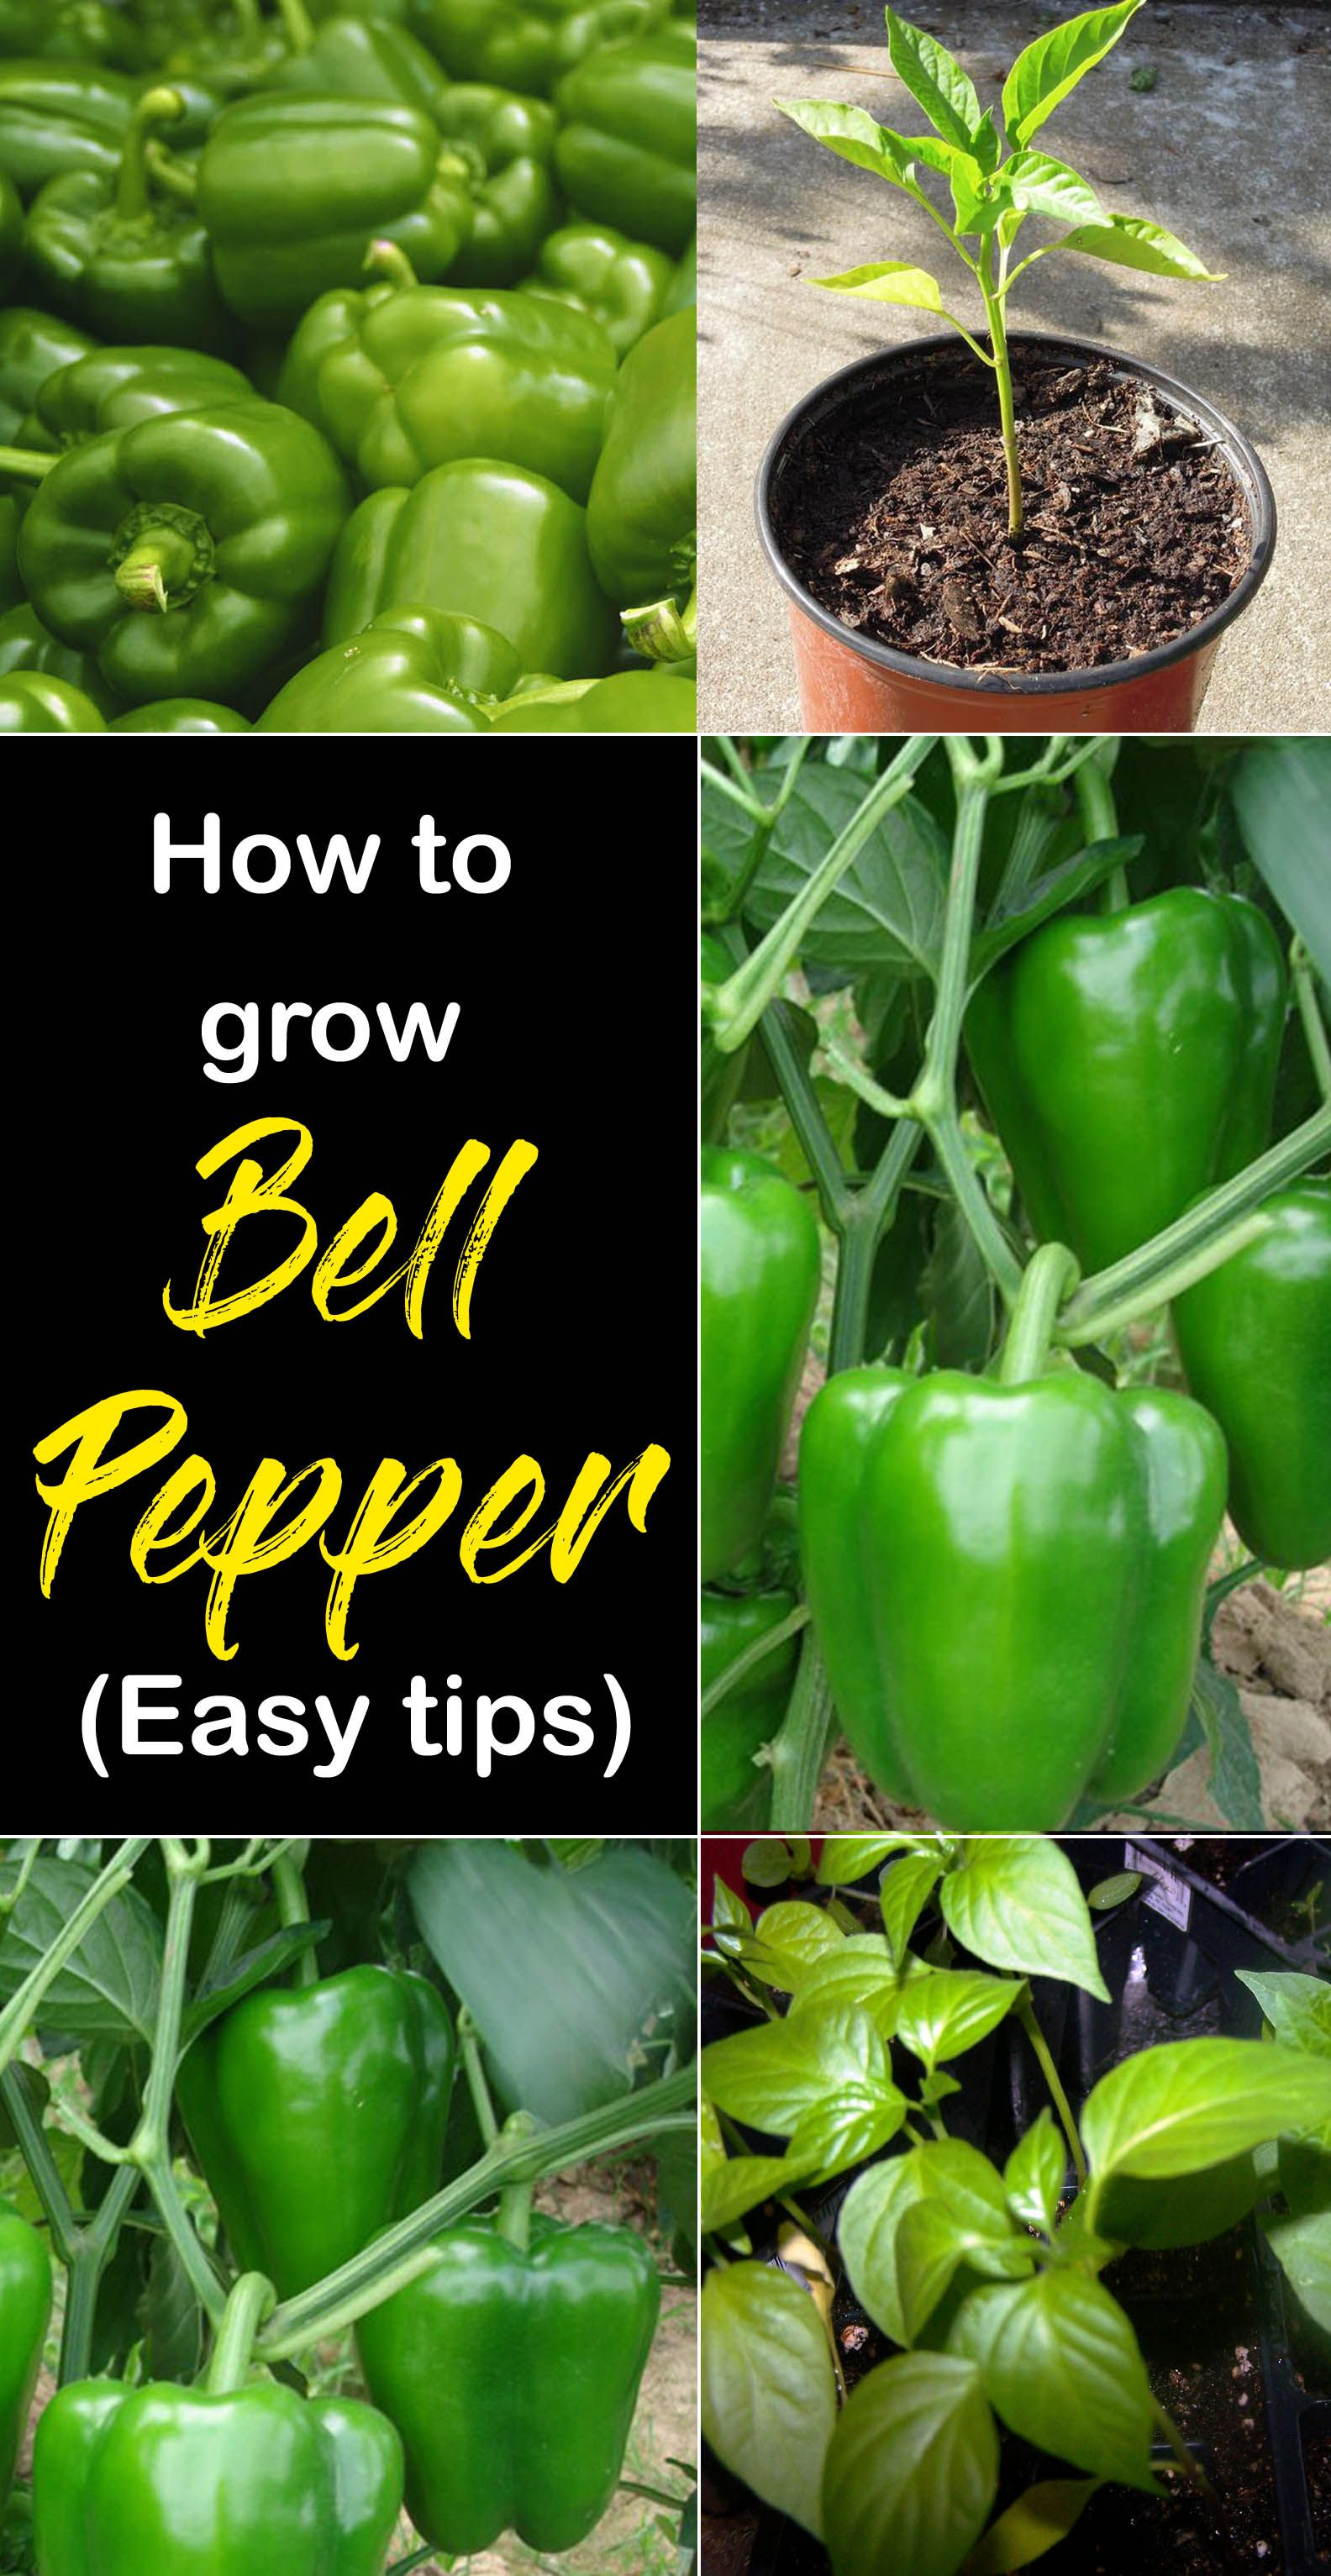 How To Grow Bell Peppers In Containers Growing Bell Peppers Sweet Peppers Naturebring Growing Bell Peppers Stuffed Bell Peppers Growing Green Peppers